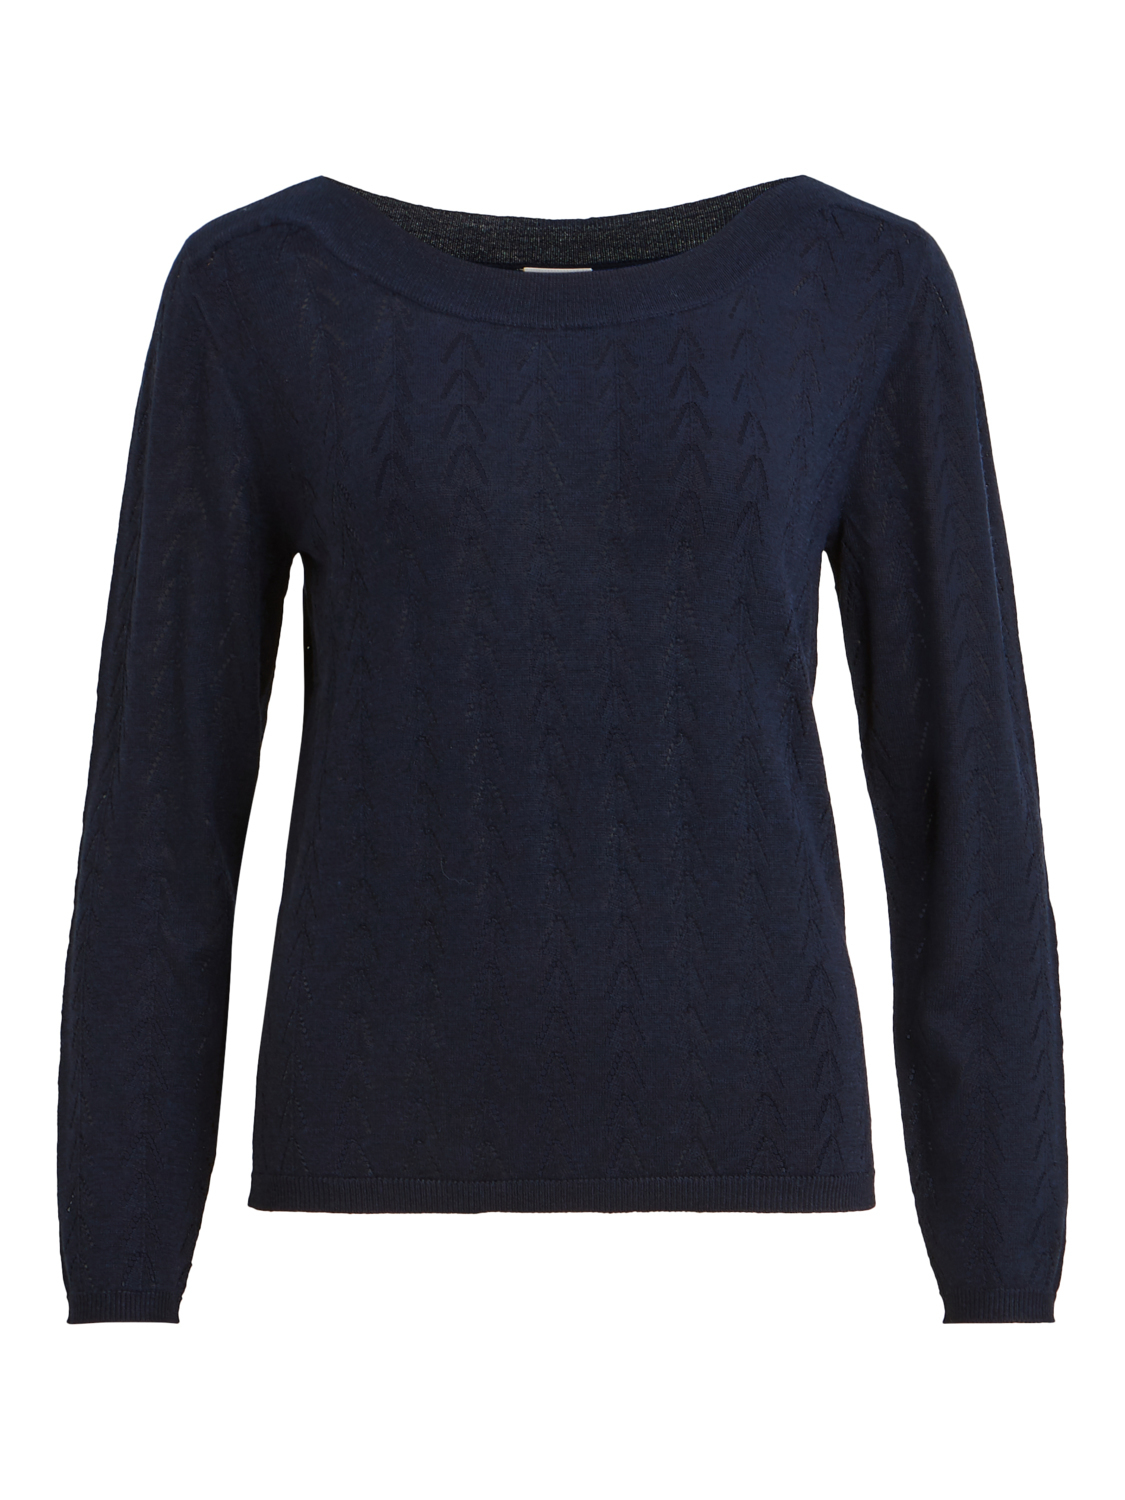 VILA Wendis knit L/S boat neck detail top, navy blazer